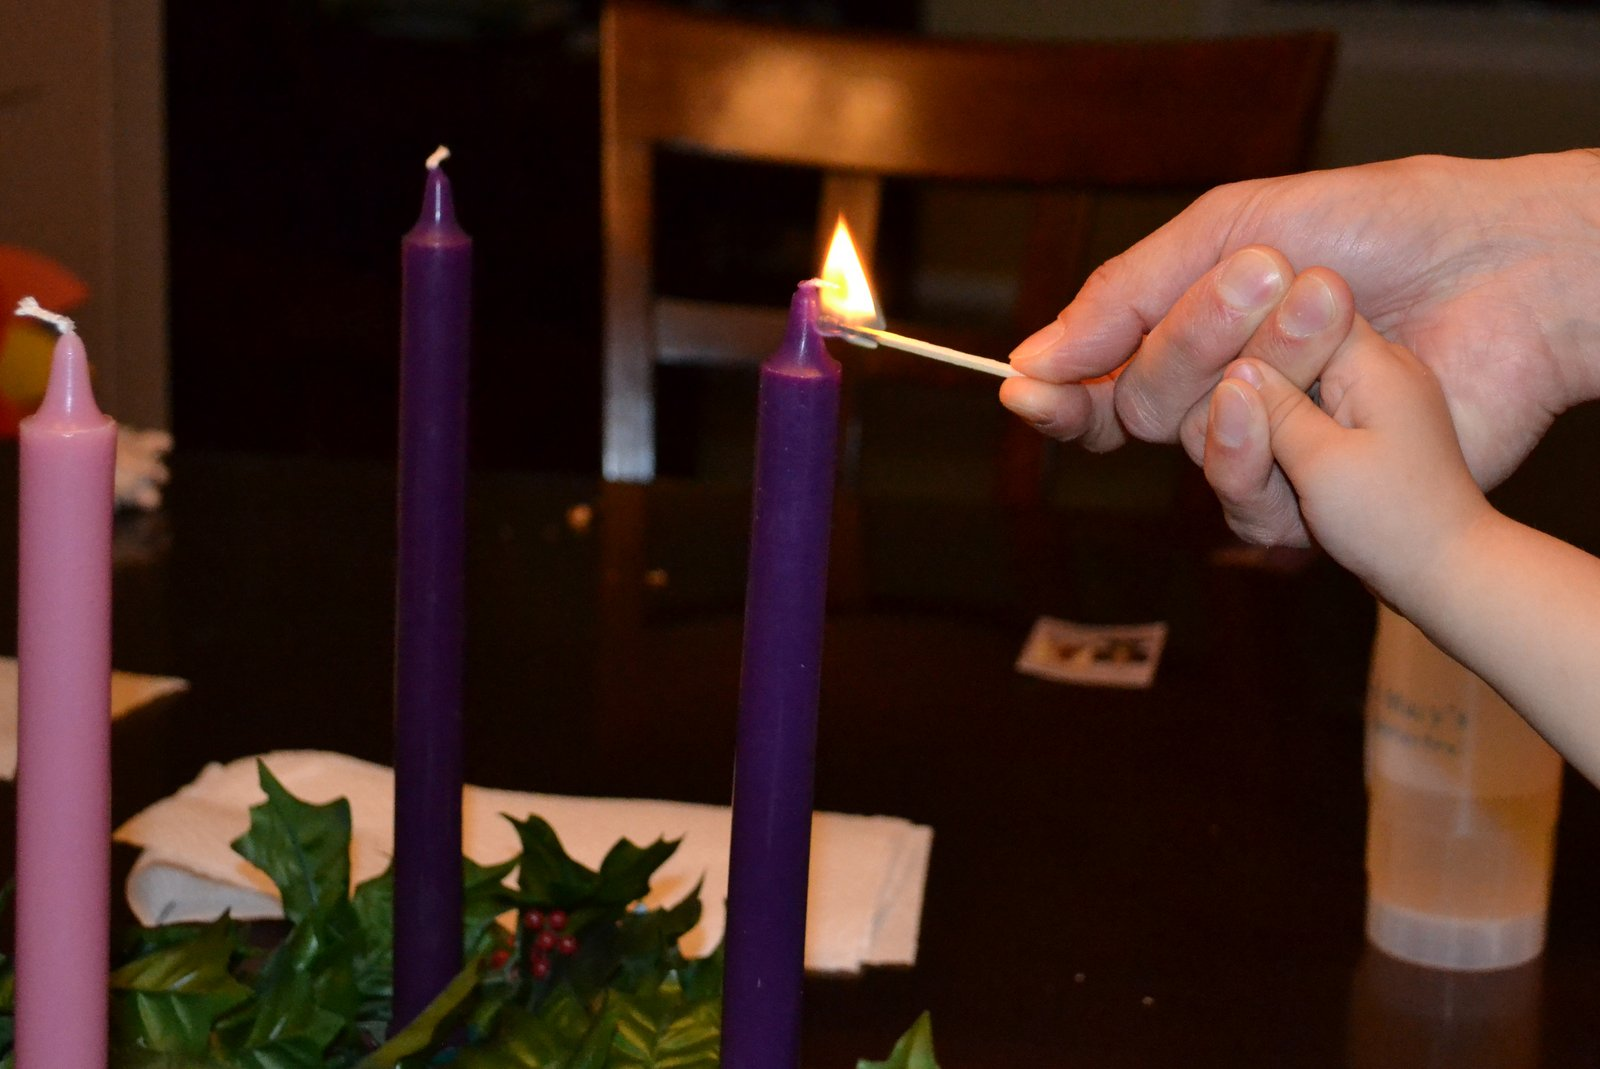 This year weu0027ll probably light them for dinner for most of the rest of the days of Advent. I got smarter this year and bought bigger candles that will ... & Advent in Our Home by Grete Veliz azcodes.com